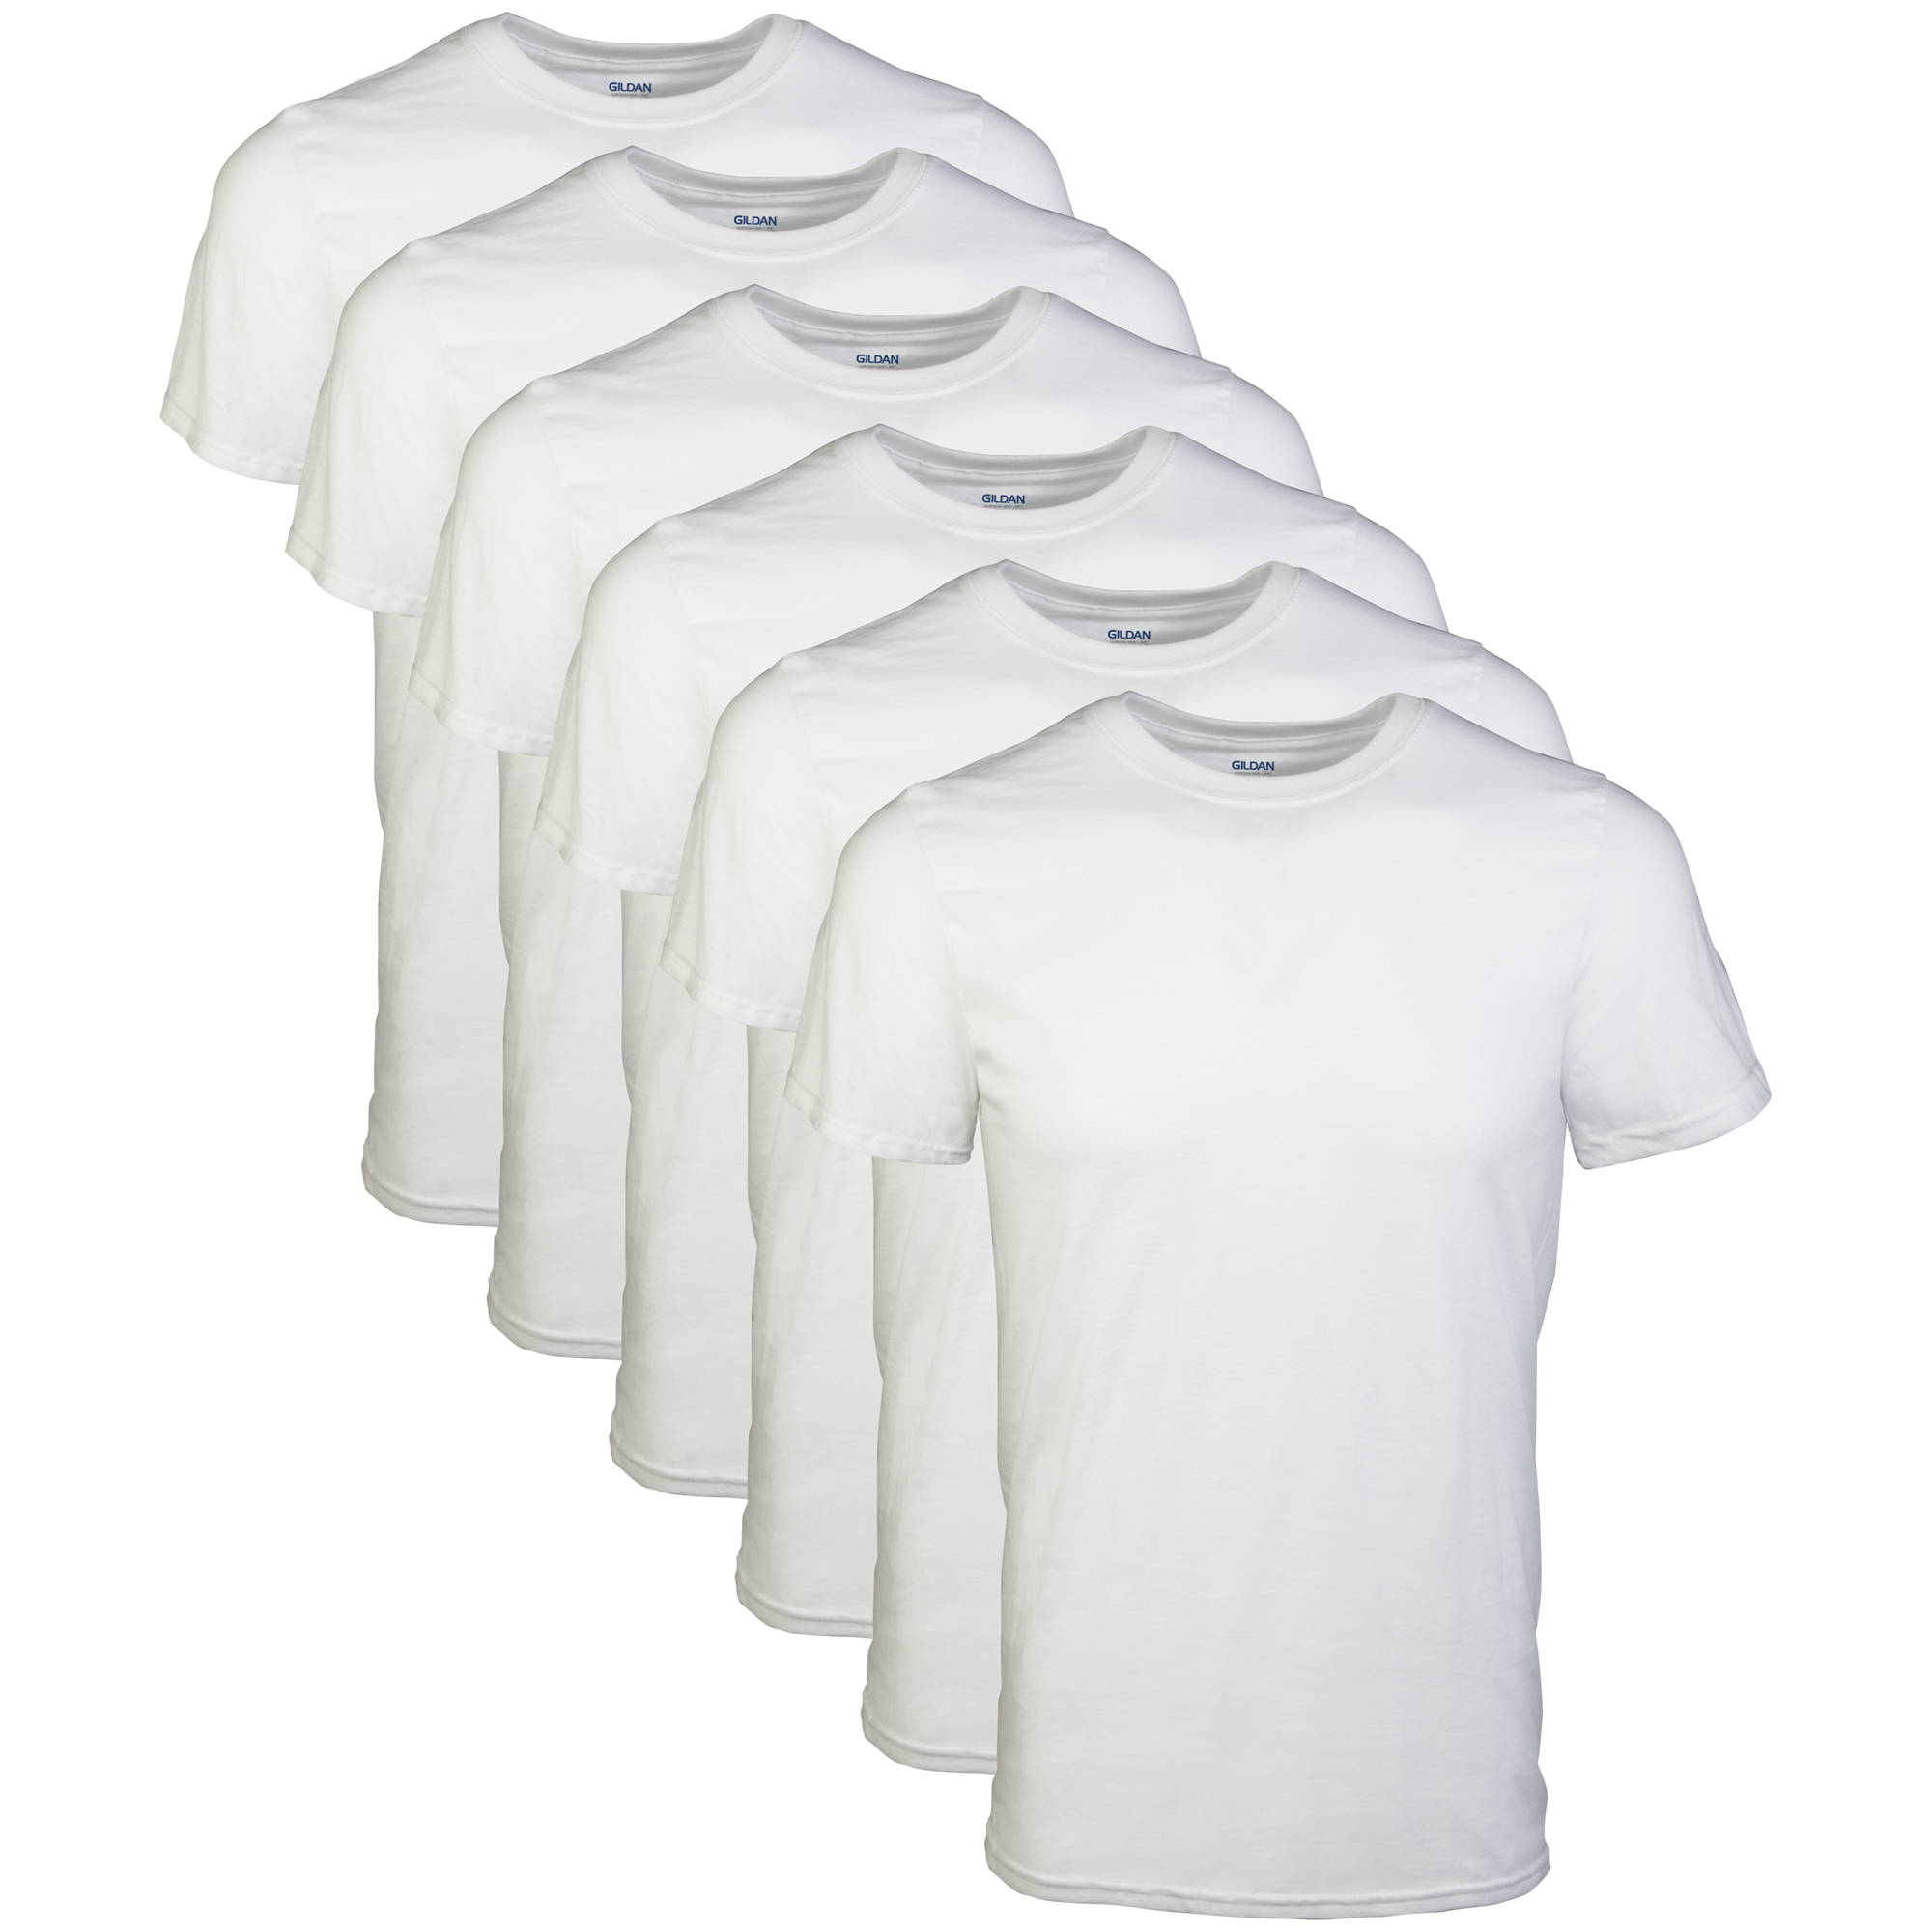 a12444bc Gildan - Gildan Men's Short Sleeve Crew White T-Shirt, 6-Pack - Walmart.com